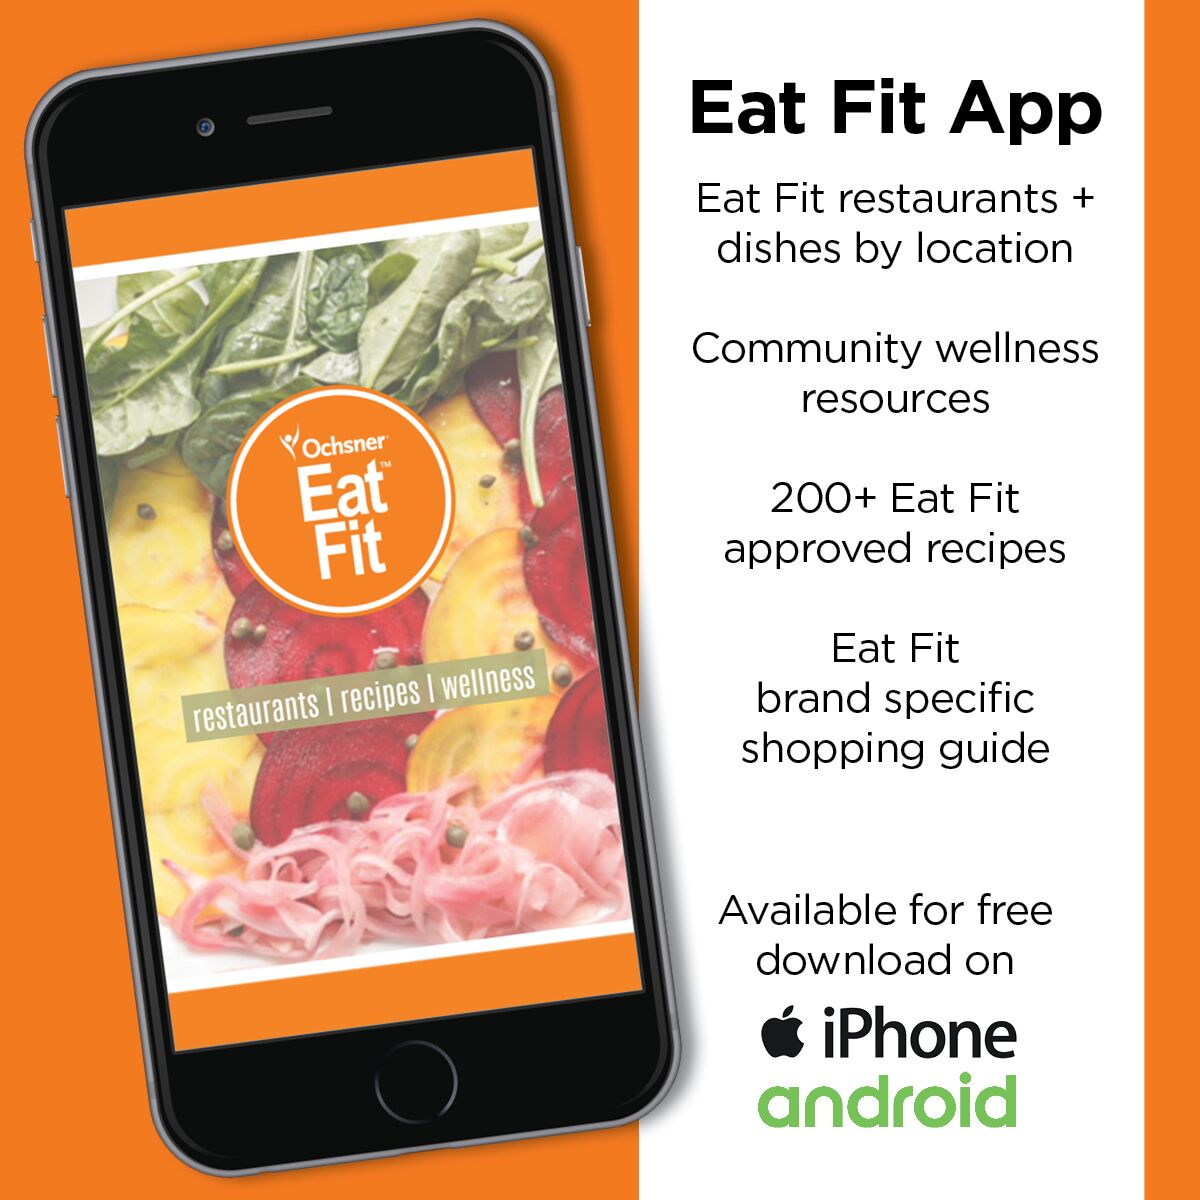 Eat Fit NOLA